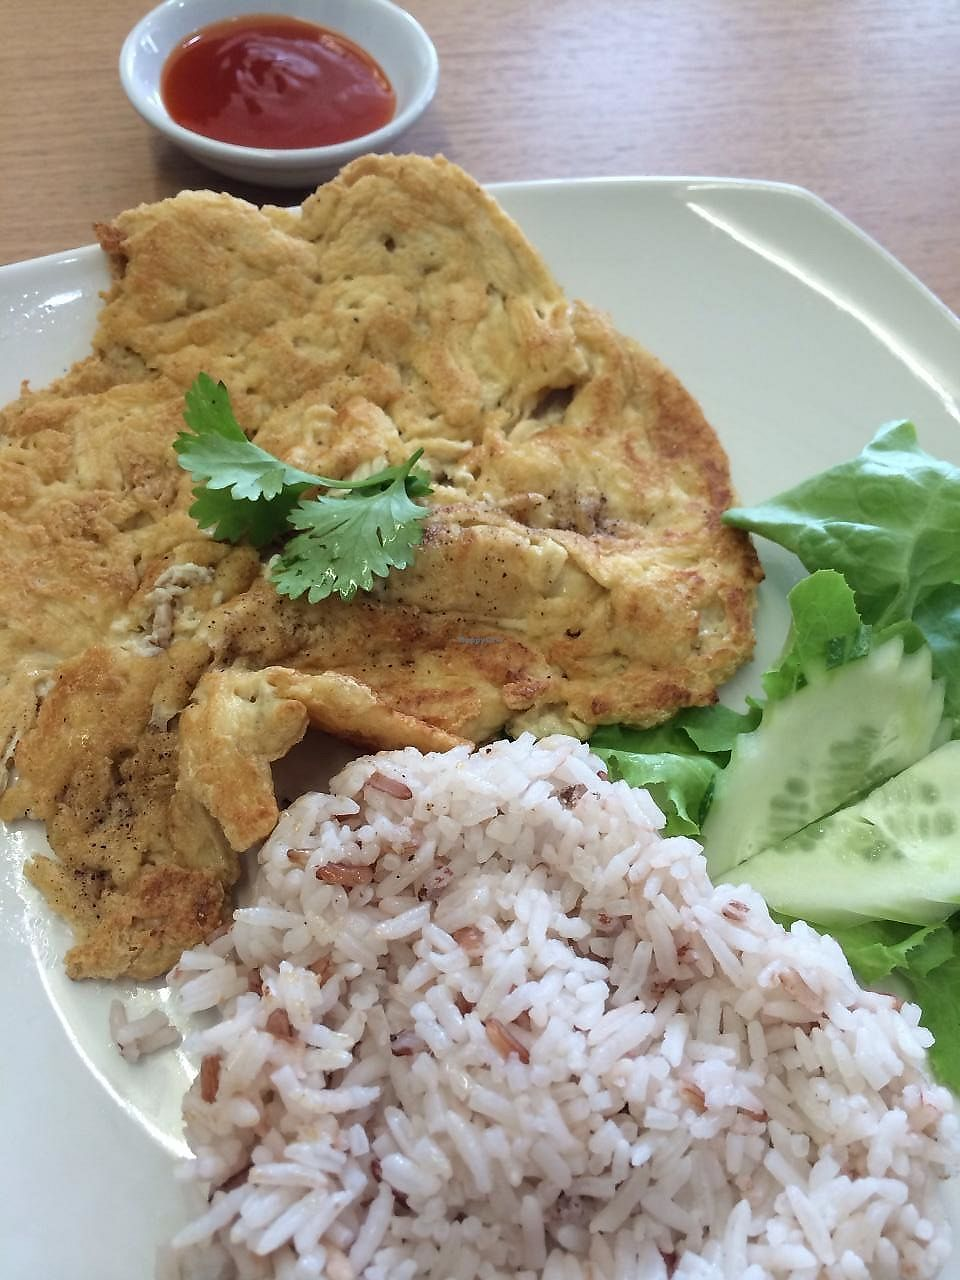 "Photo of Loving Hut - Ram-Intra 51  by <a href=""/members/profile/Wansaree"">Wansaree</a> <br/>Vegan Thai-style omelette  <br/> January 24, 2014  - <a href='/contact/abuse/image/23892/268576'>Report</a>"